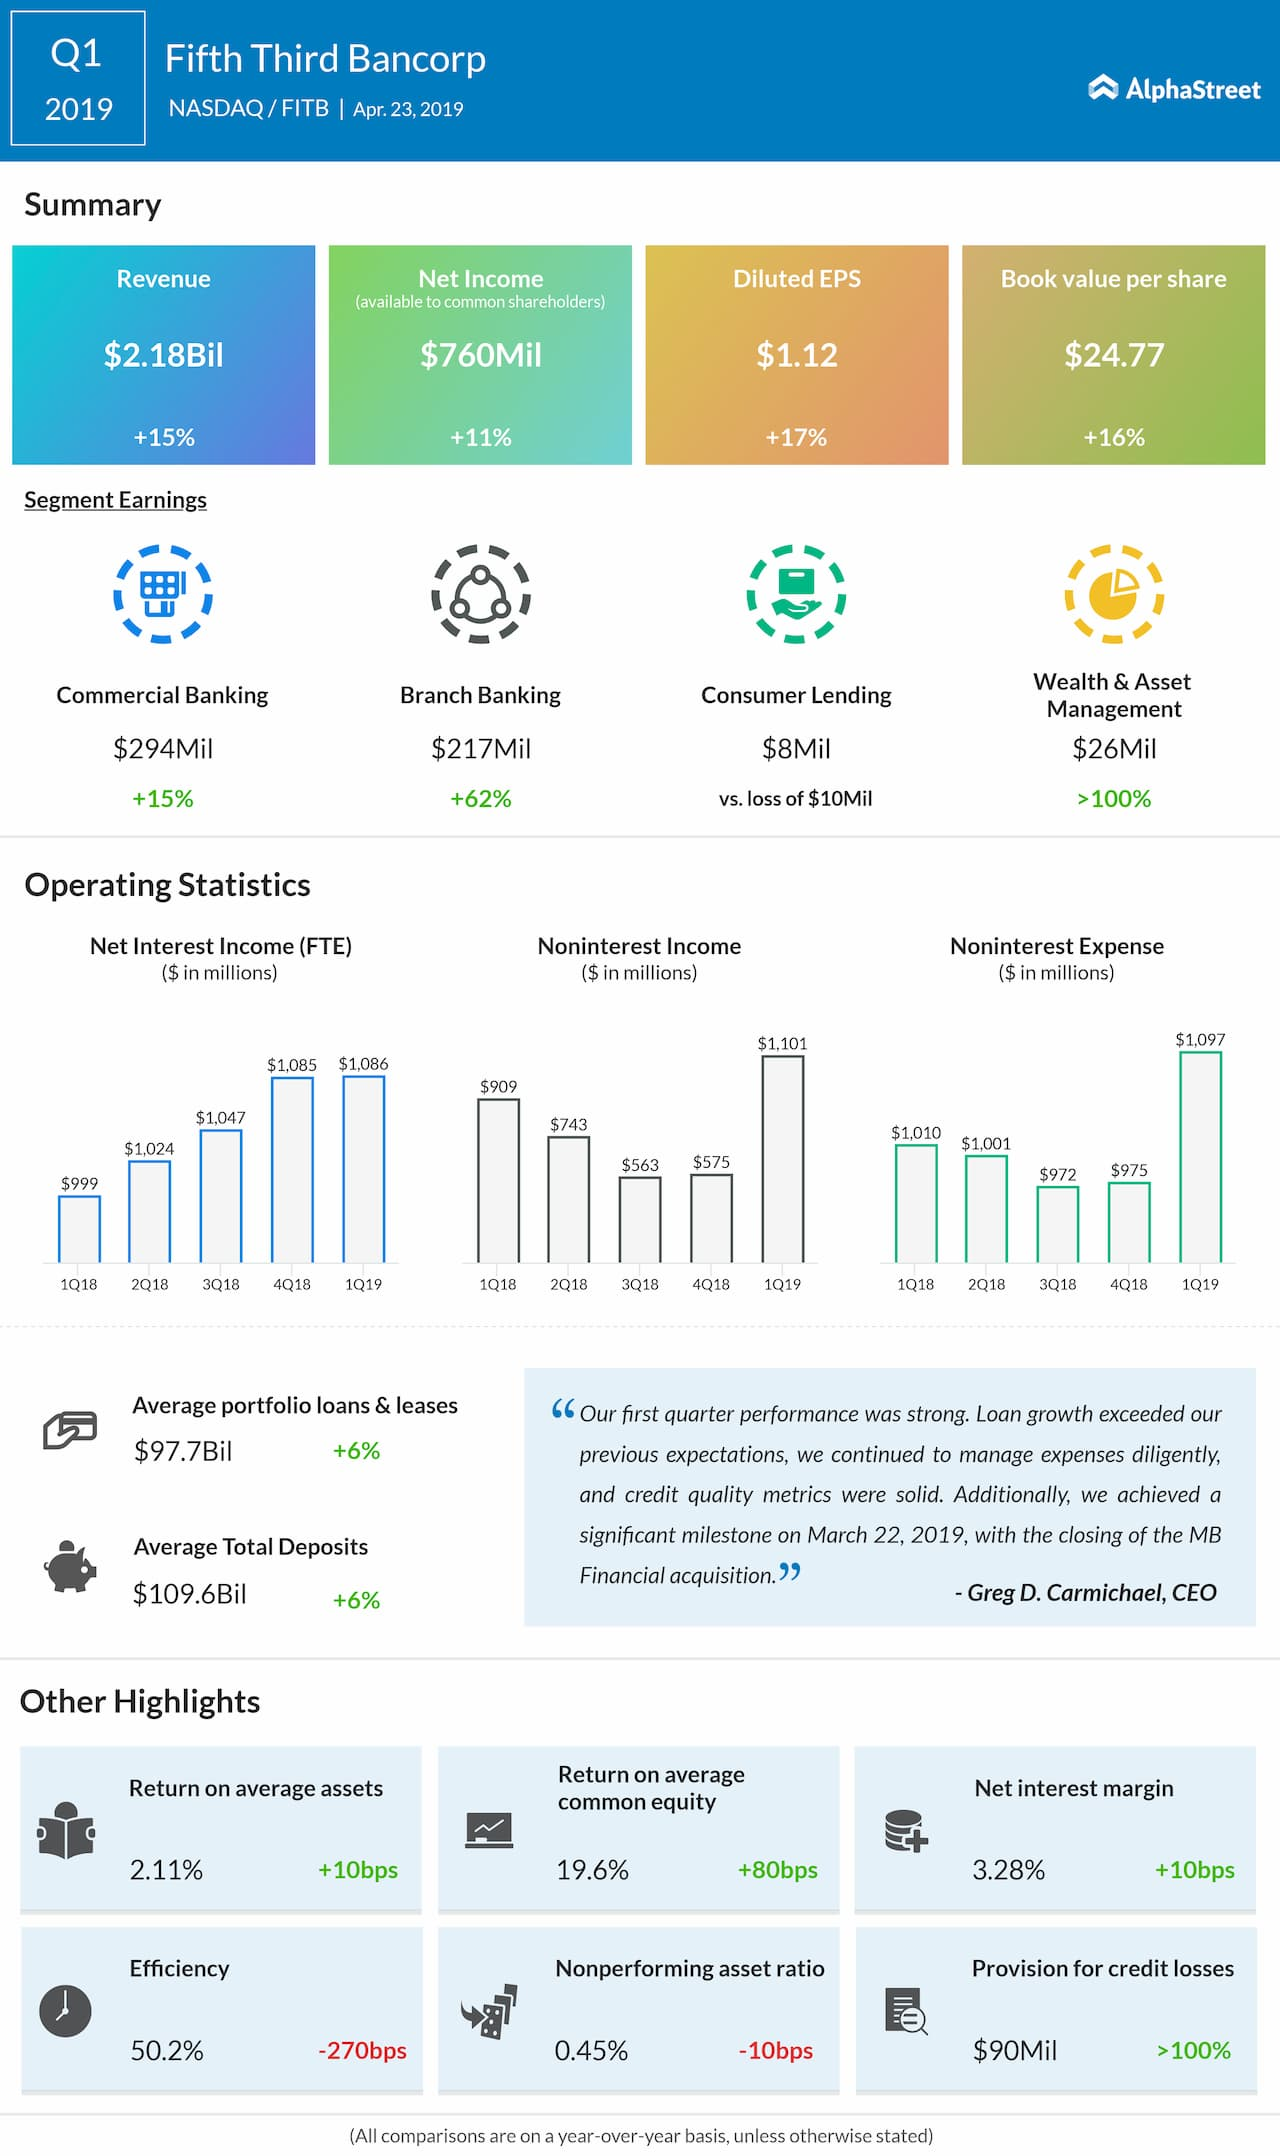 Fifth Third Bancorp Q1 2019 Earnings Infographic